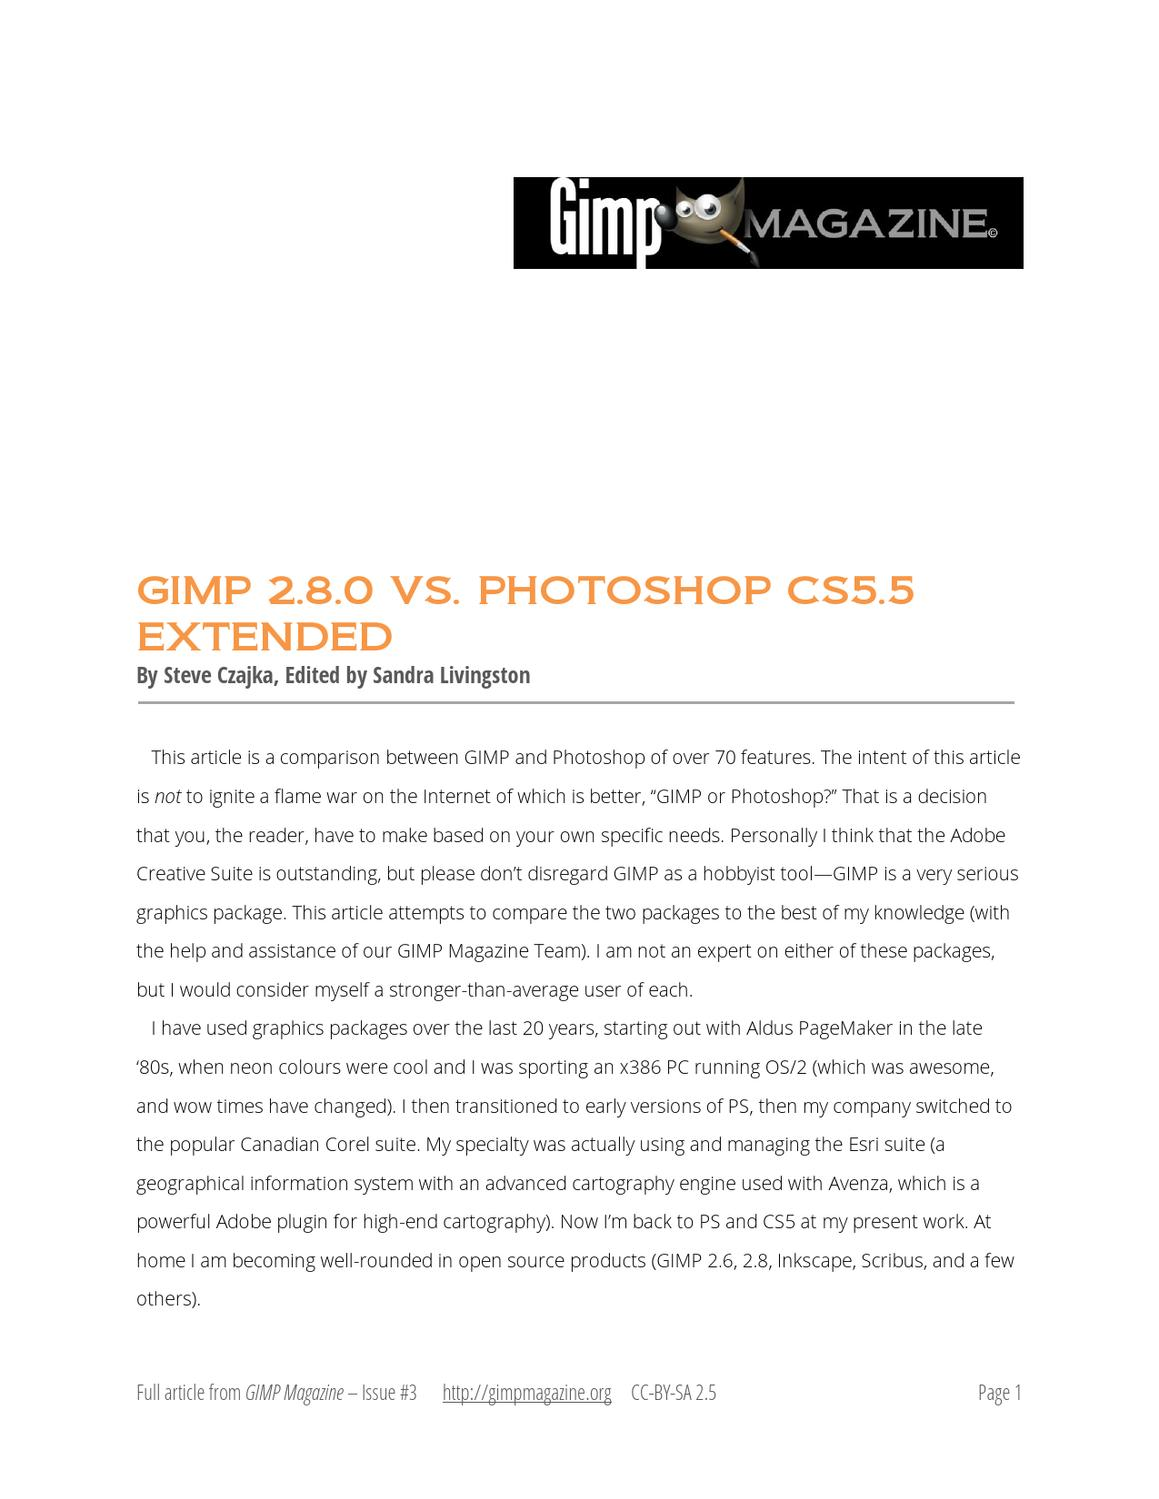 Mesmerizing Gimp Magazine Paper Gimp Vs Photoshop Comparison By Gimp Magazine Gimp Magazine Paper Gimp Vs Photoshop Comparison By Gimp Photoshop Gimp Comparison Photoshop Vs Gimpshop dpreview Photoshop Vs Gimp